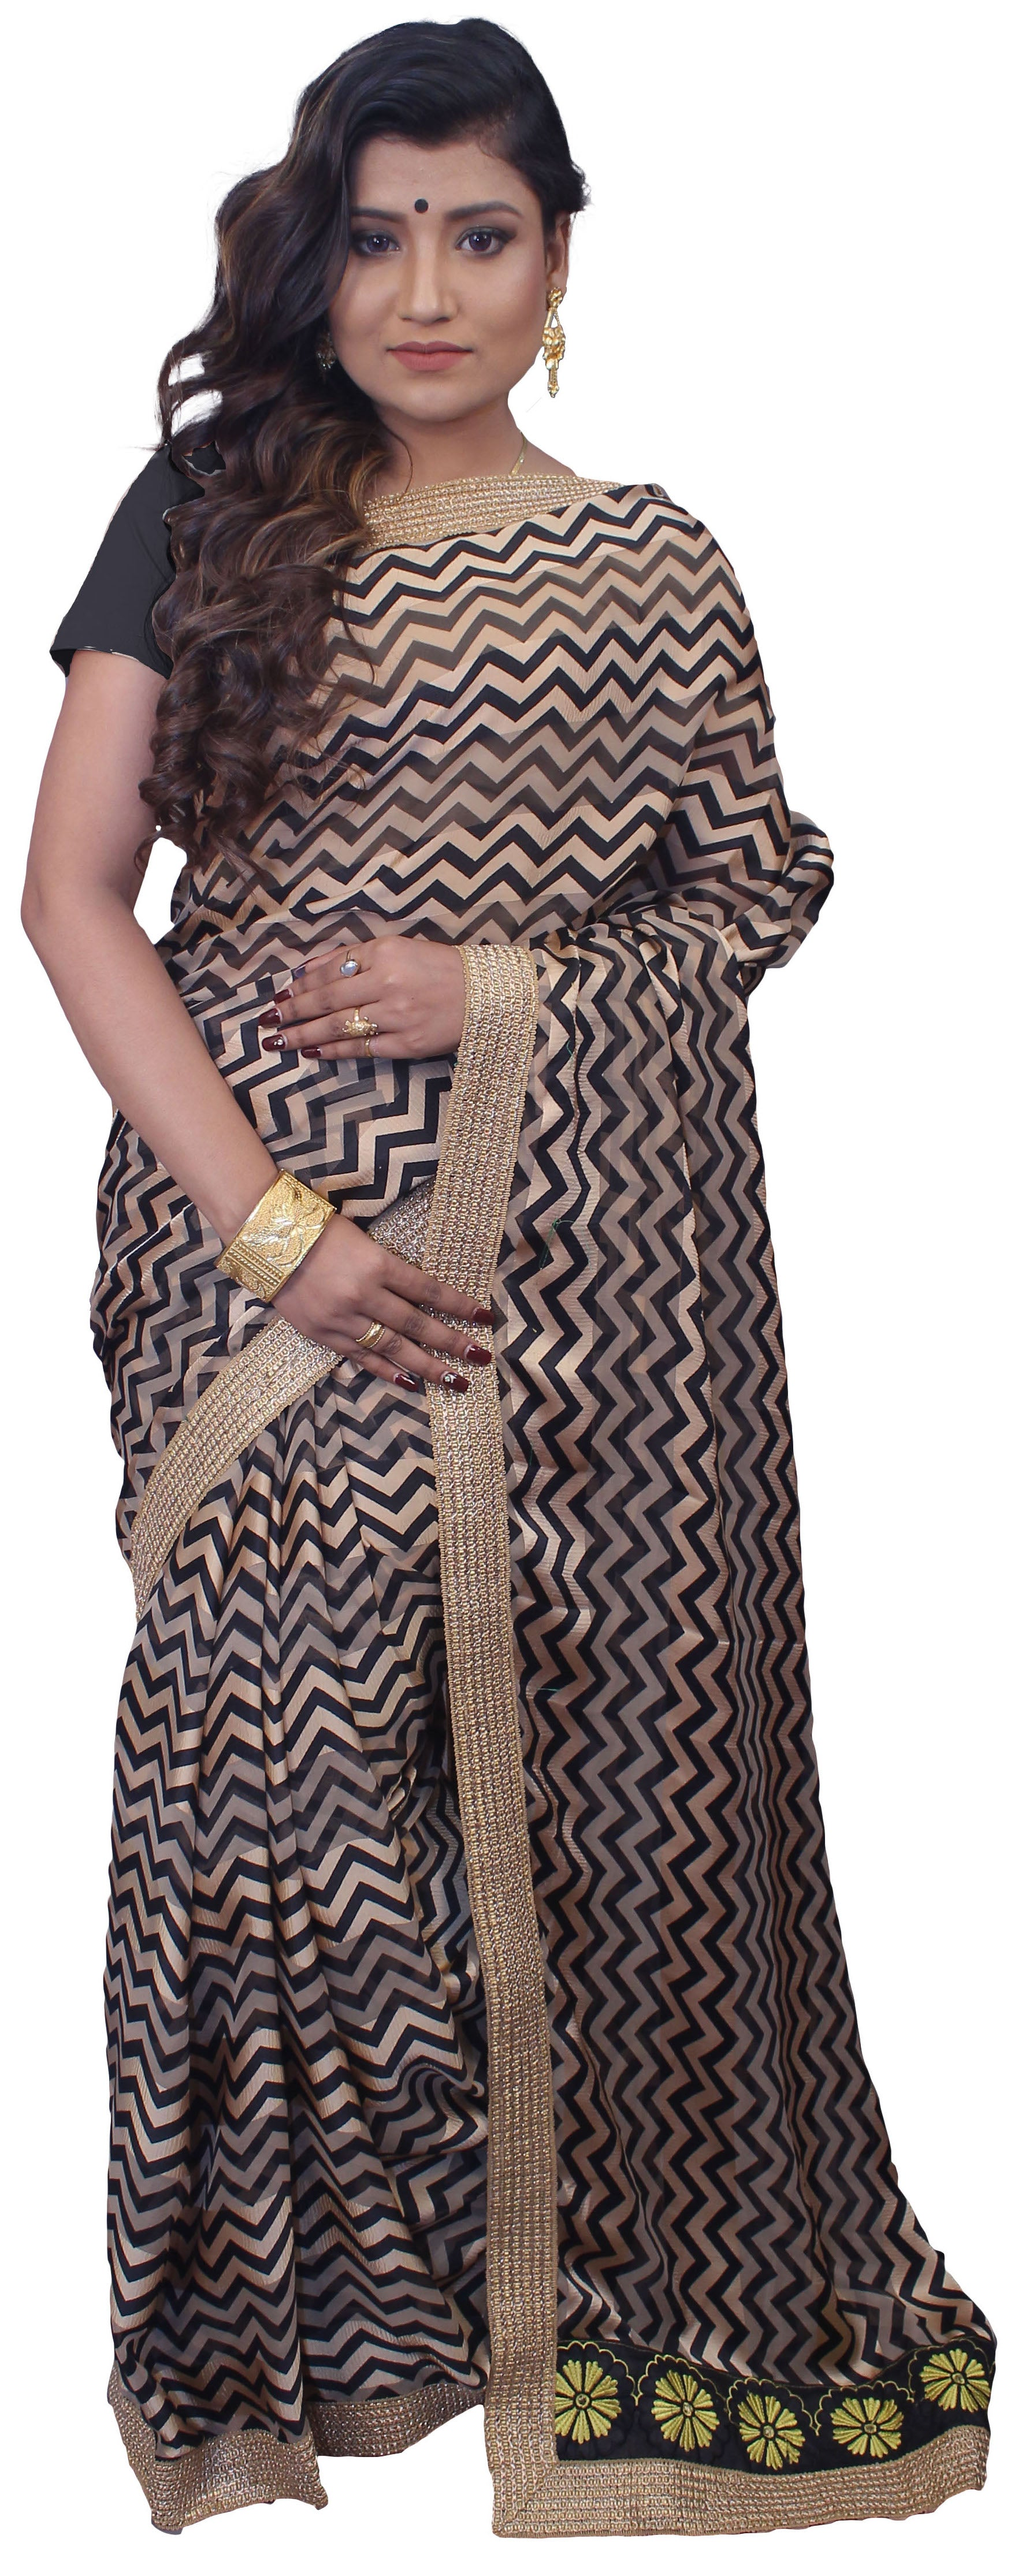 SMSAREE Beige & Black Designer Wedding Partywear Crepe Zari Hand Embroidery Work Bridal Saree Sari With Blouse Piece E709